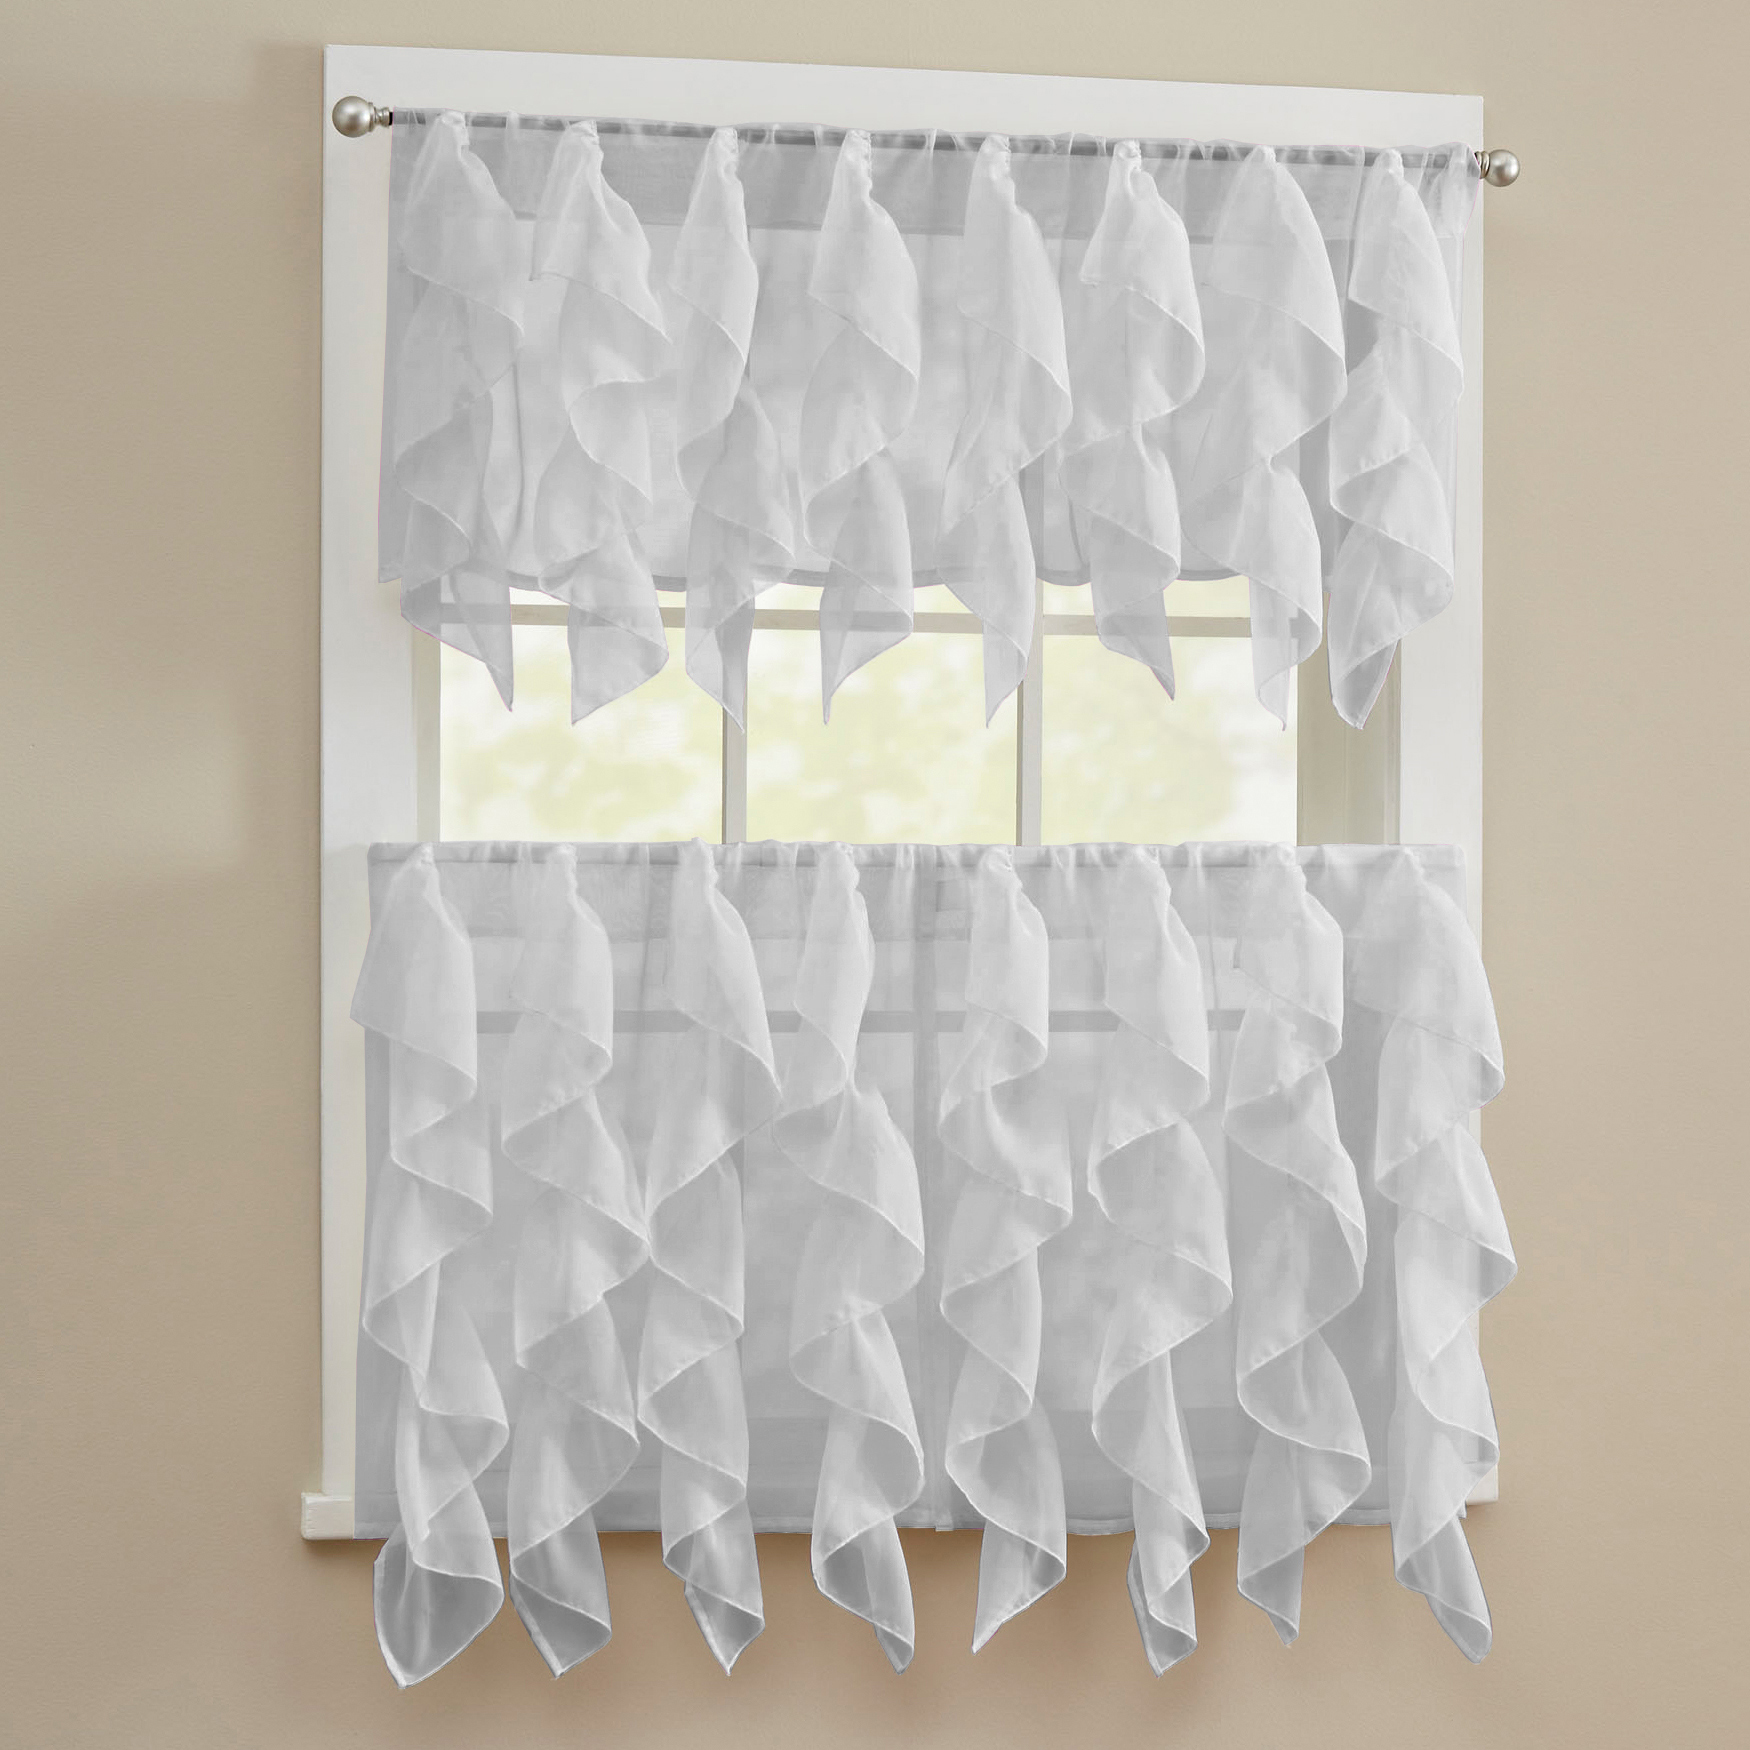 Details about Sheer Voile Vertical Ruffle Window Kitchen Curtain Tiers or  Valance Silver